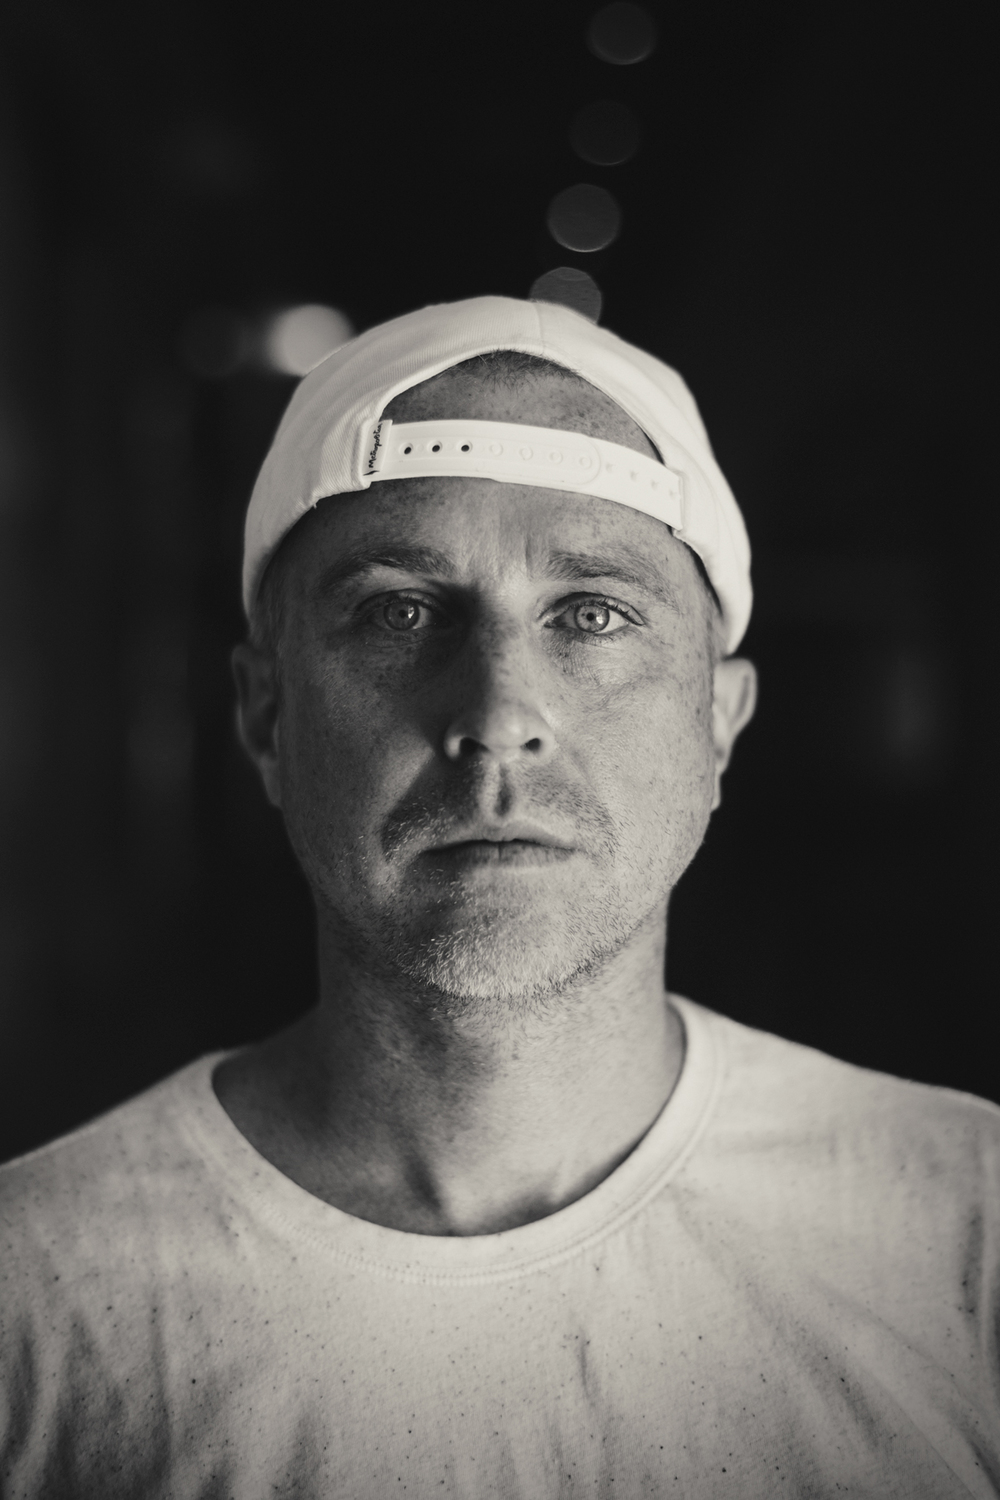 Keith Hufnagel, HUF CEO and pro skateboarder